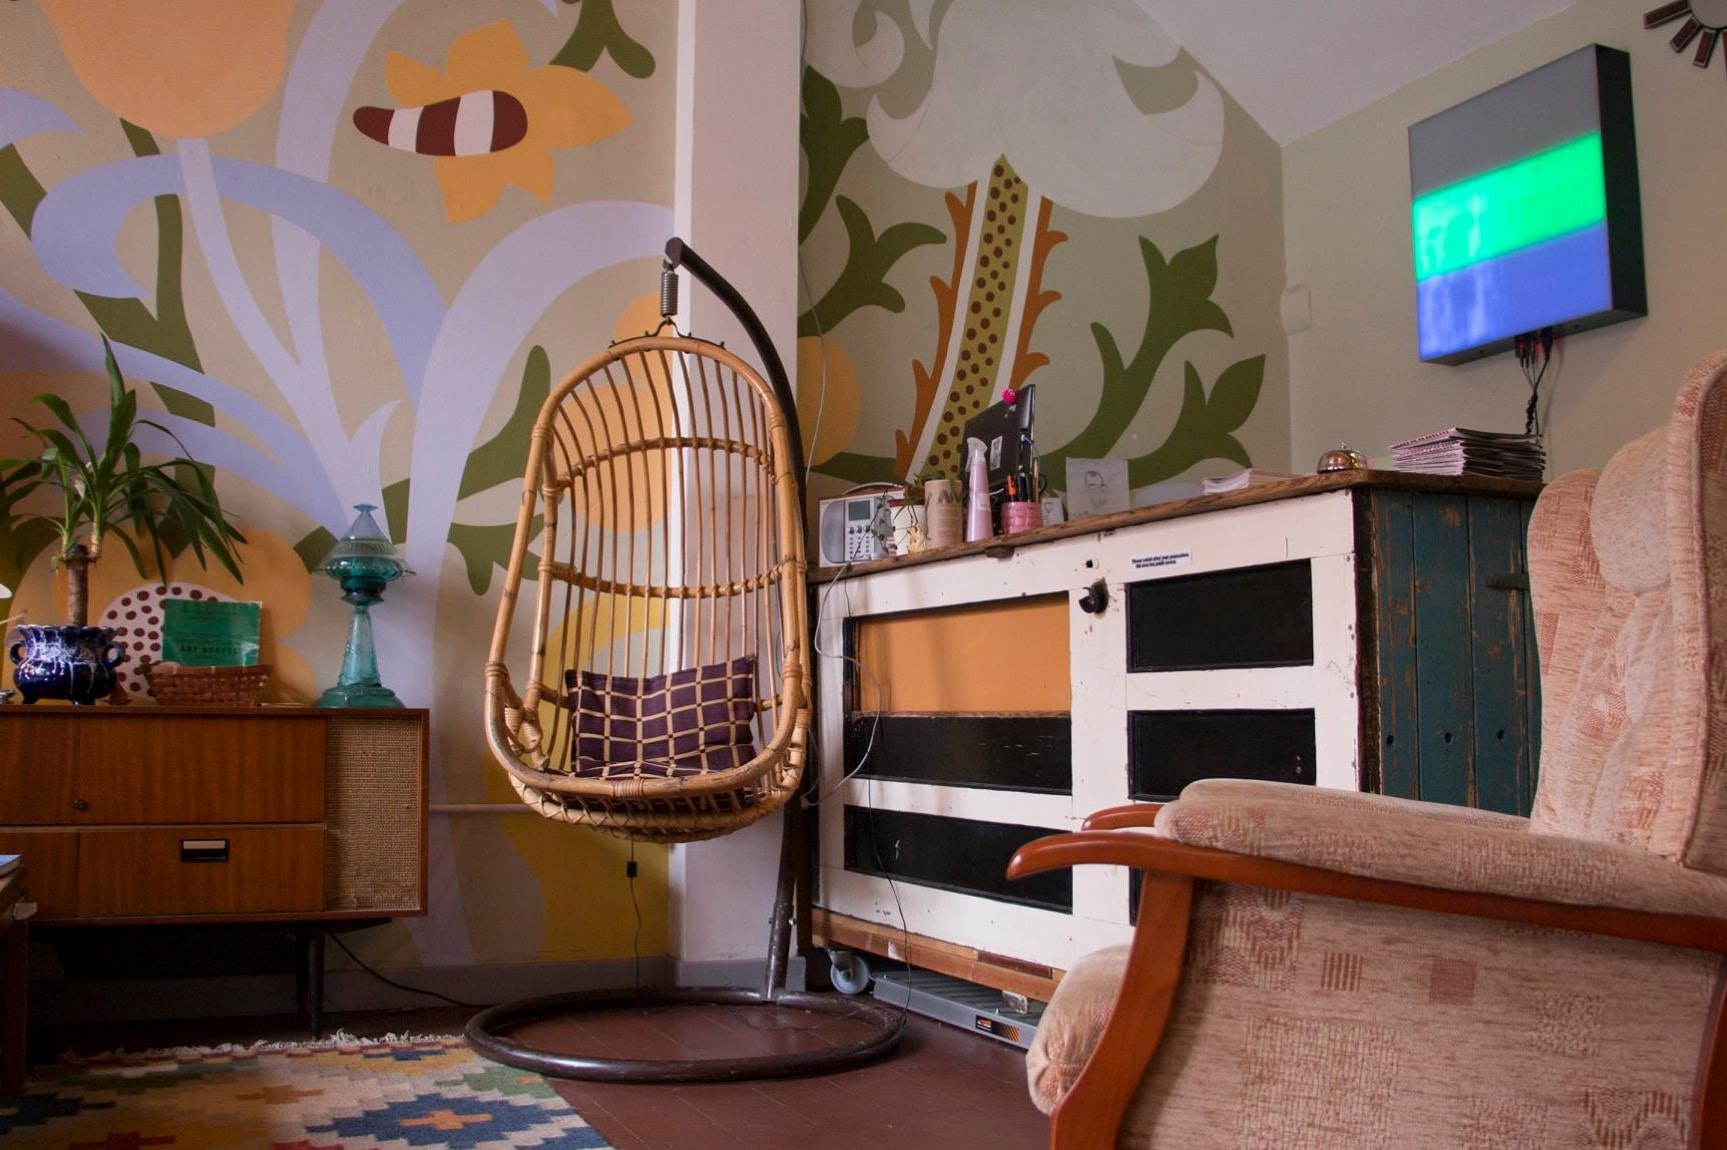 check-in-area-at-art-hostel-leeds